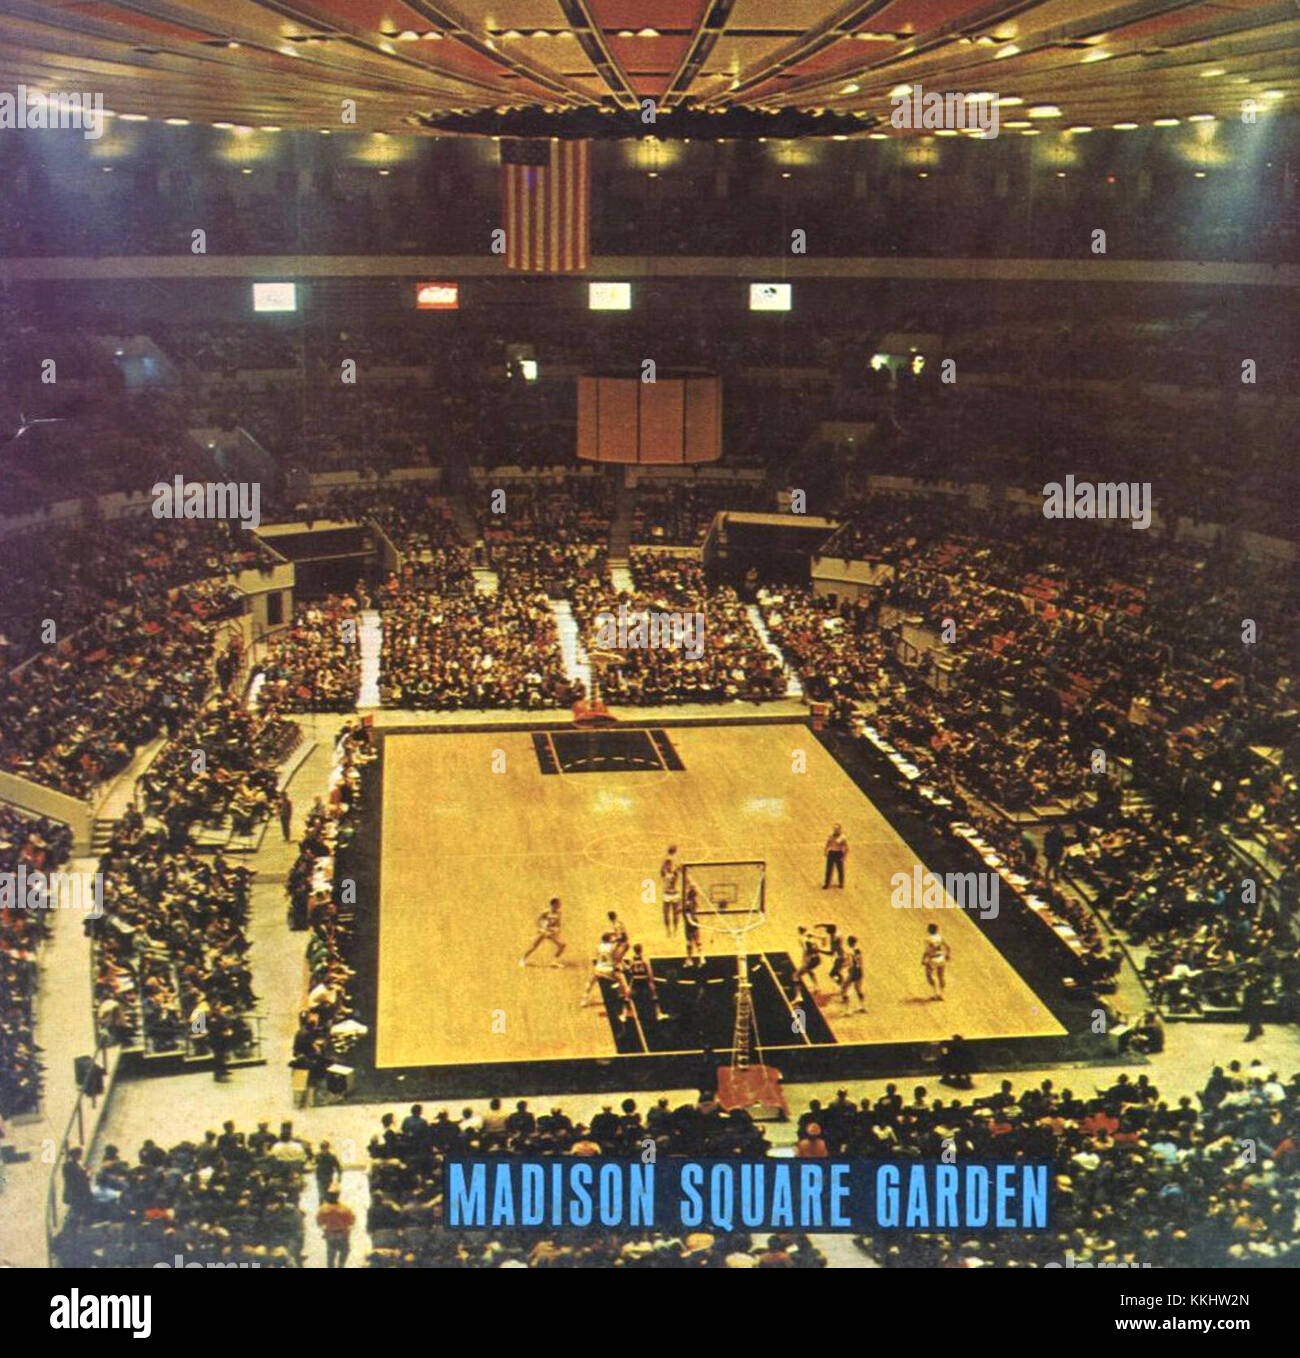 Madison Square Garden 1968 Stock Photo: 166964637 - Alamy